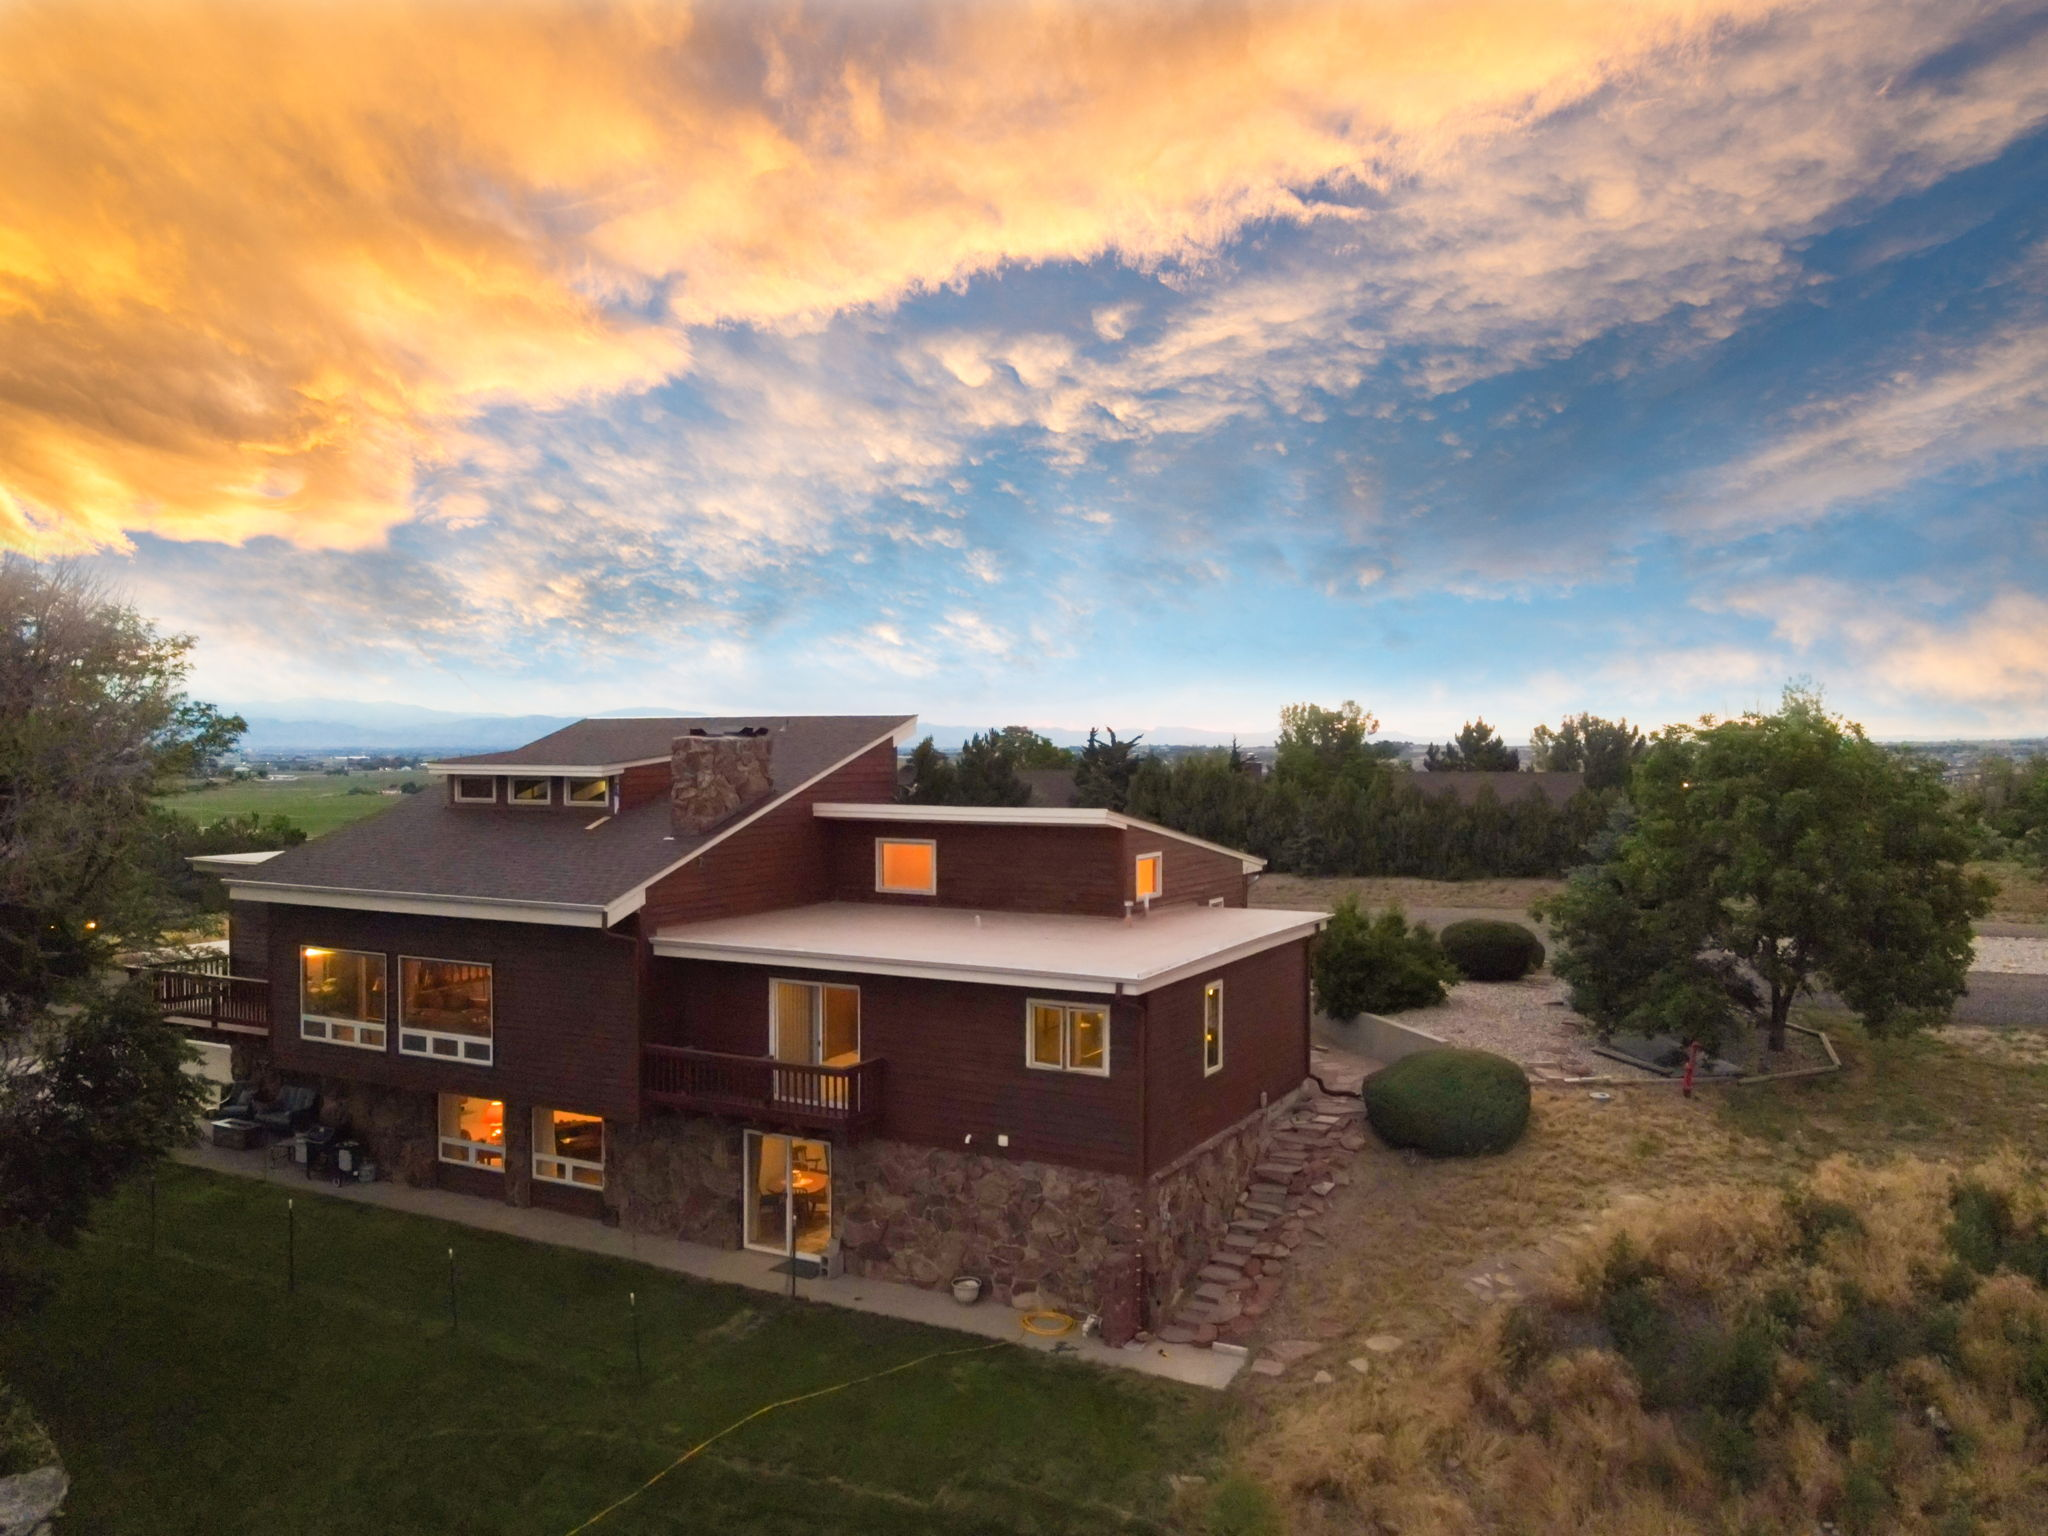 33766 Cliff Rd, Windsor, CO 80550, USA